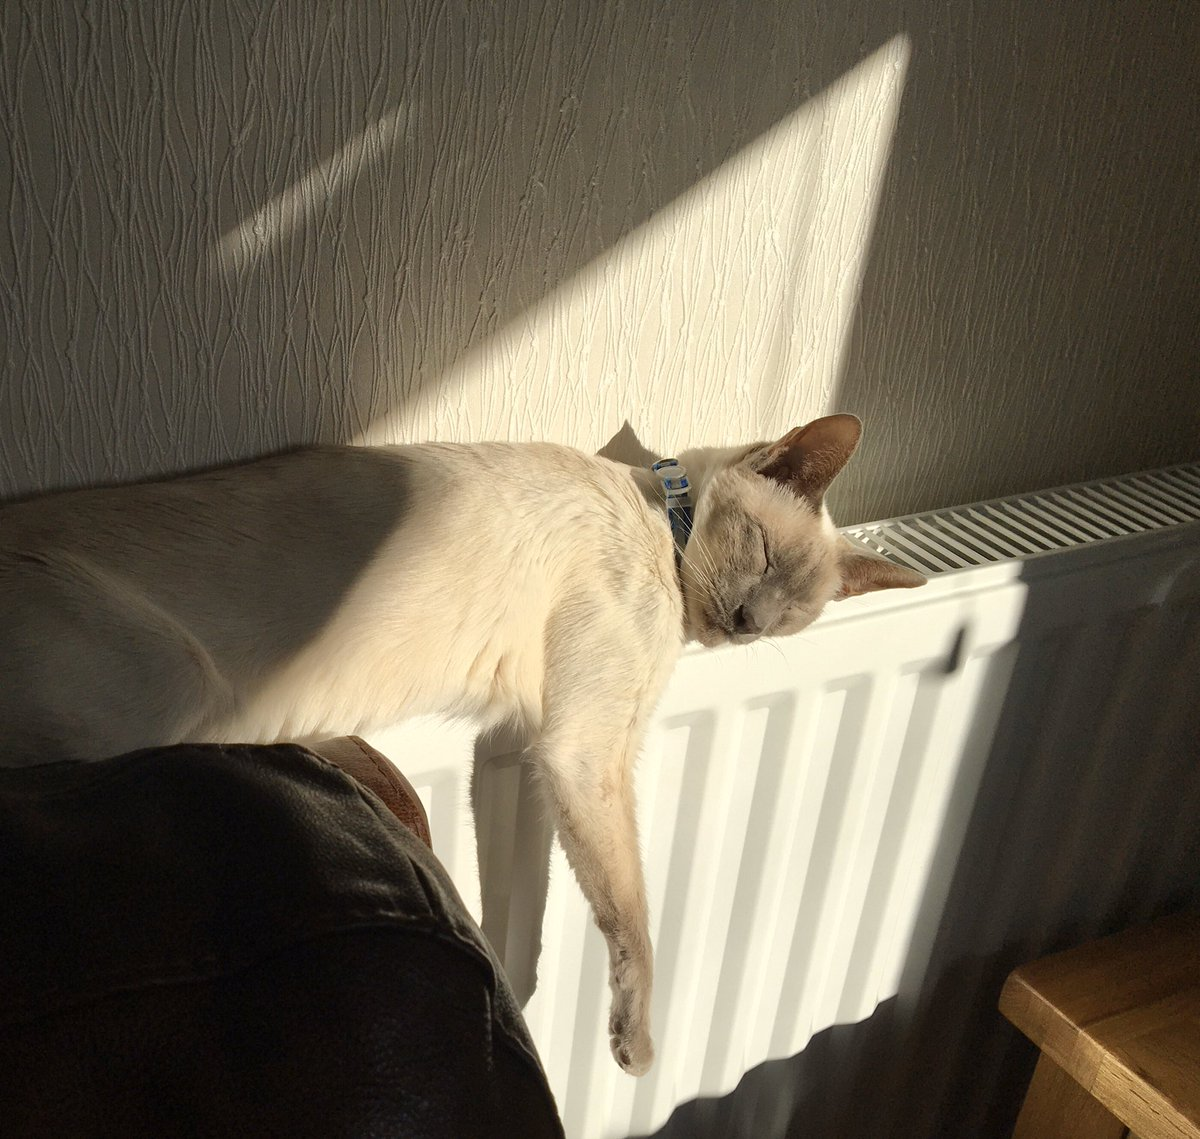 #ThursdayThoughts 🤔#SunPuddling combined with #RadiatorSurfing 🙄#HappyDays #Willow_i_am #TeamDiablo @jolenehunter #CatsOfTwitter #catsofinstagram